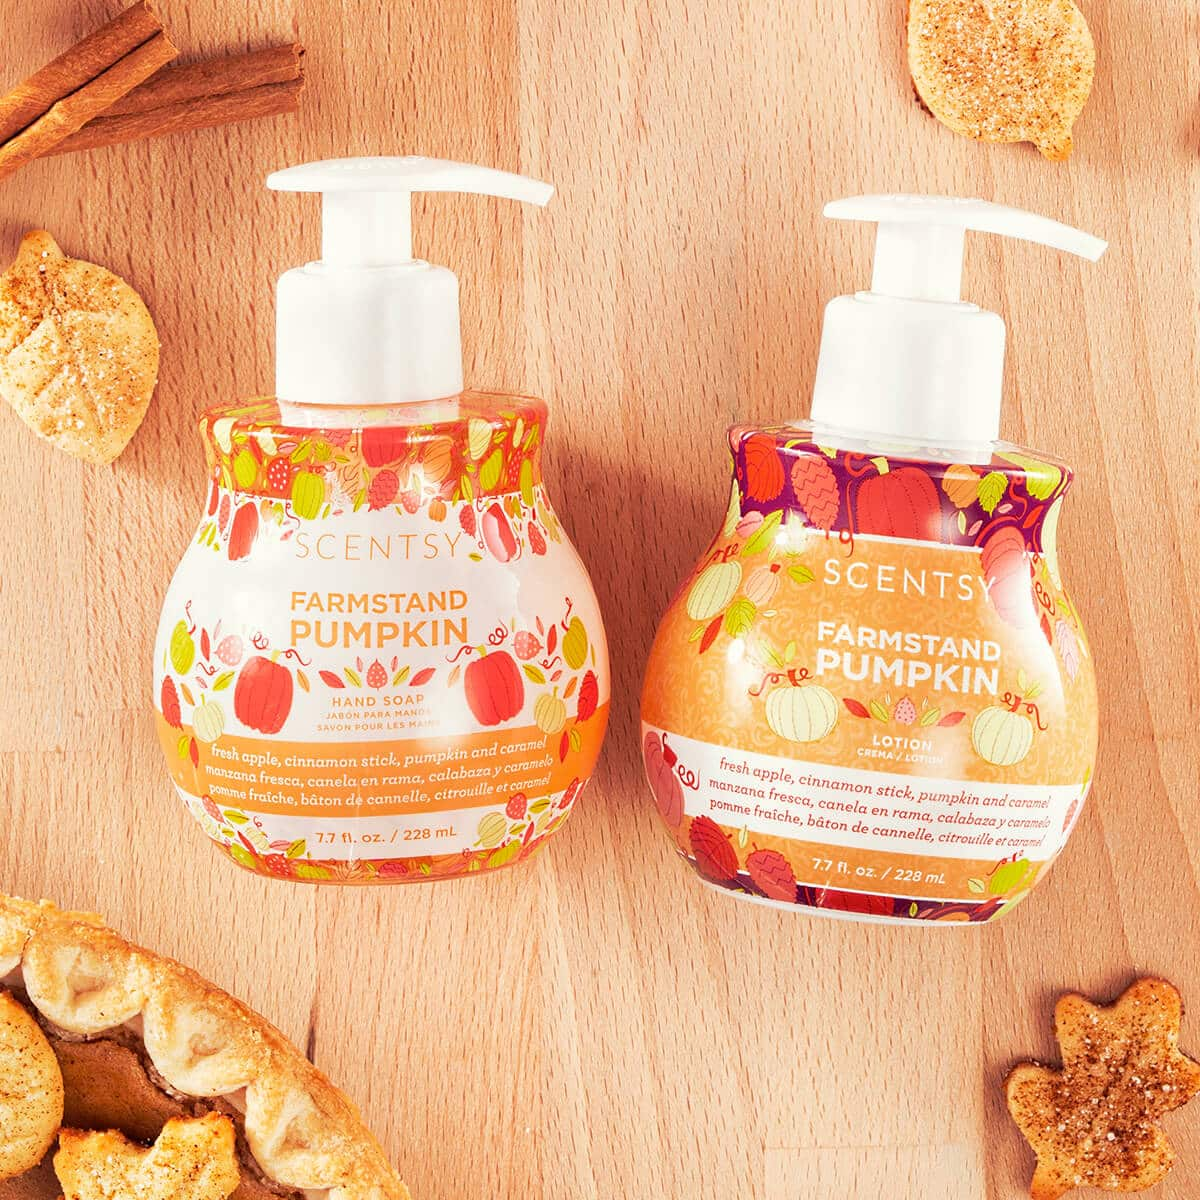 New Farmstand Pumpkin Scentsy Hand Soap And Lotion Bundle